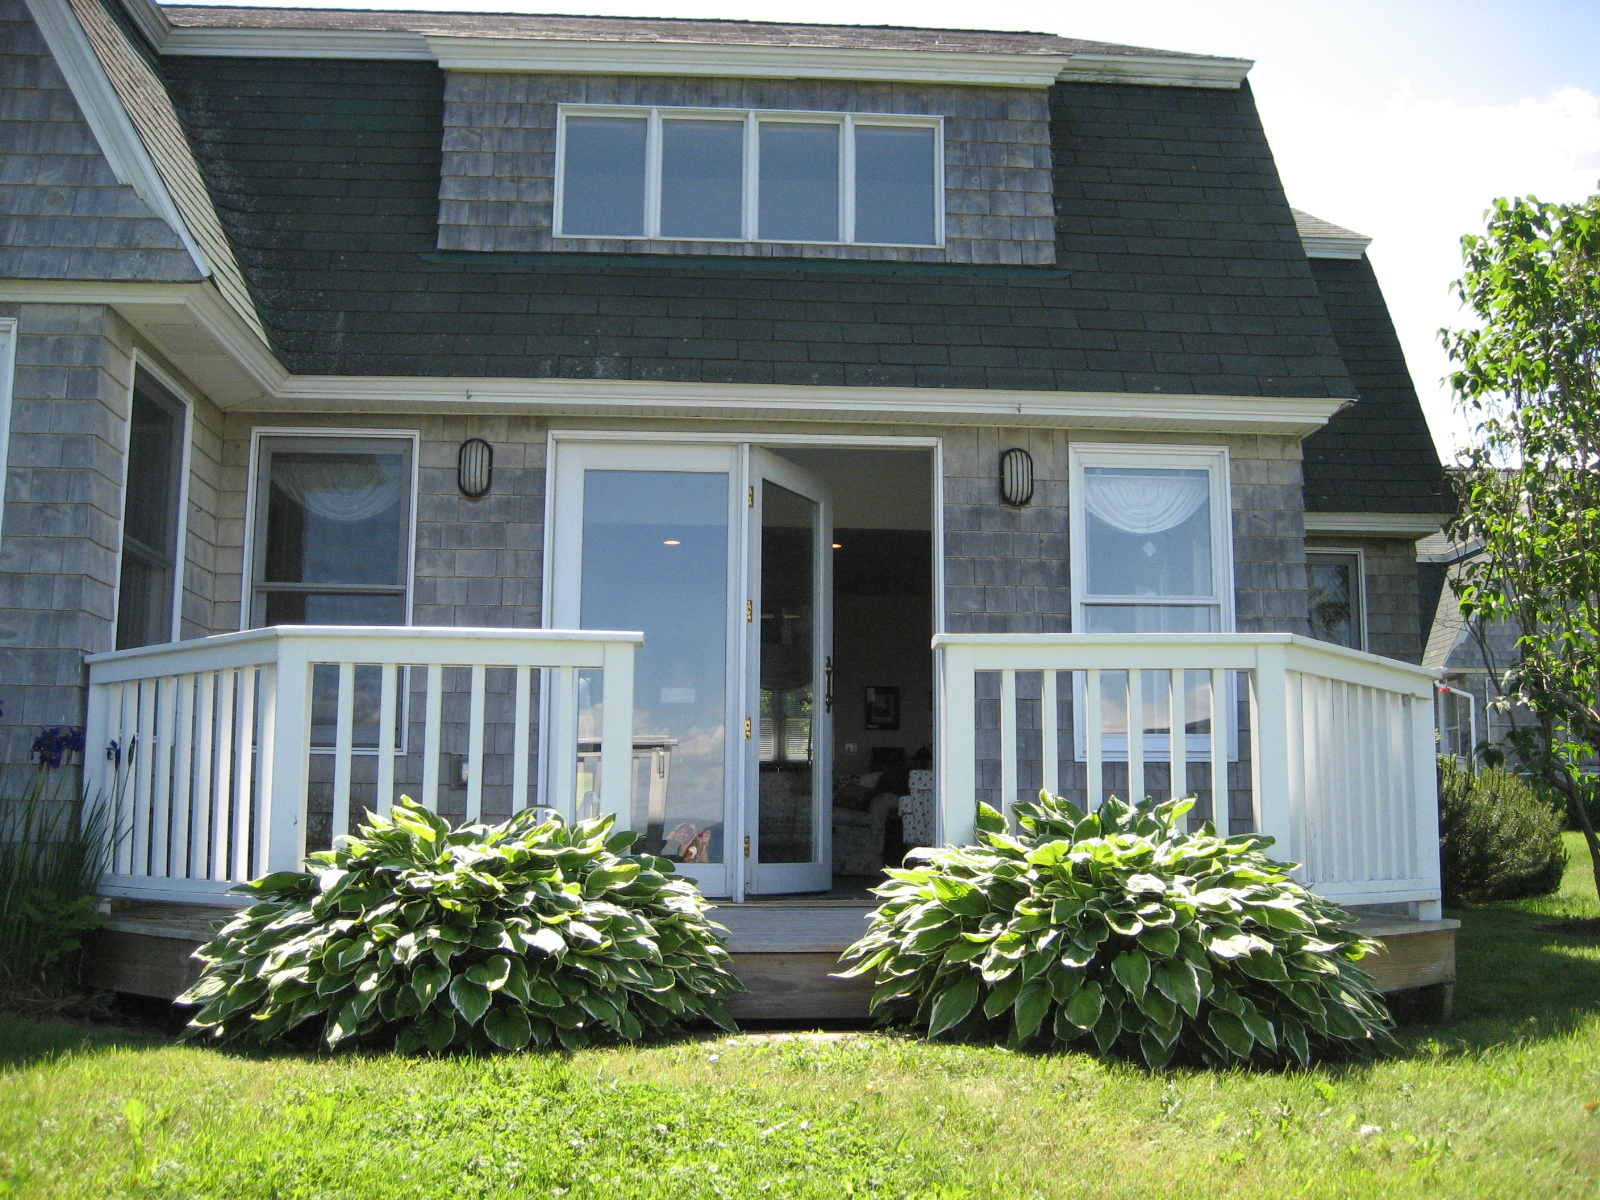 Cottage Plans White Fence Black Roof Glass Door Grey Wall